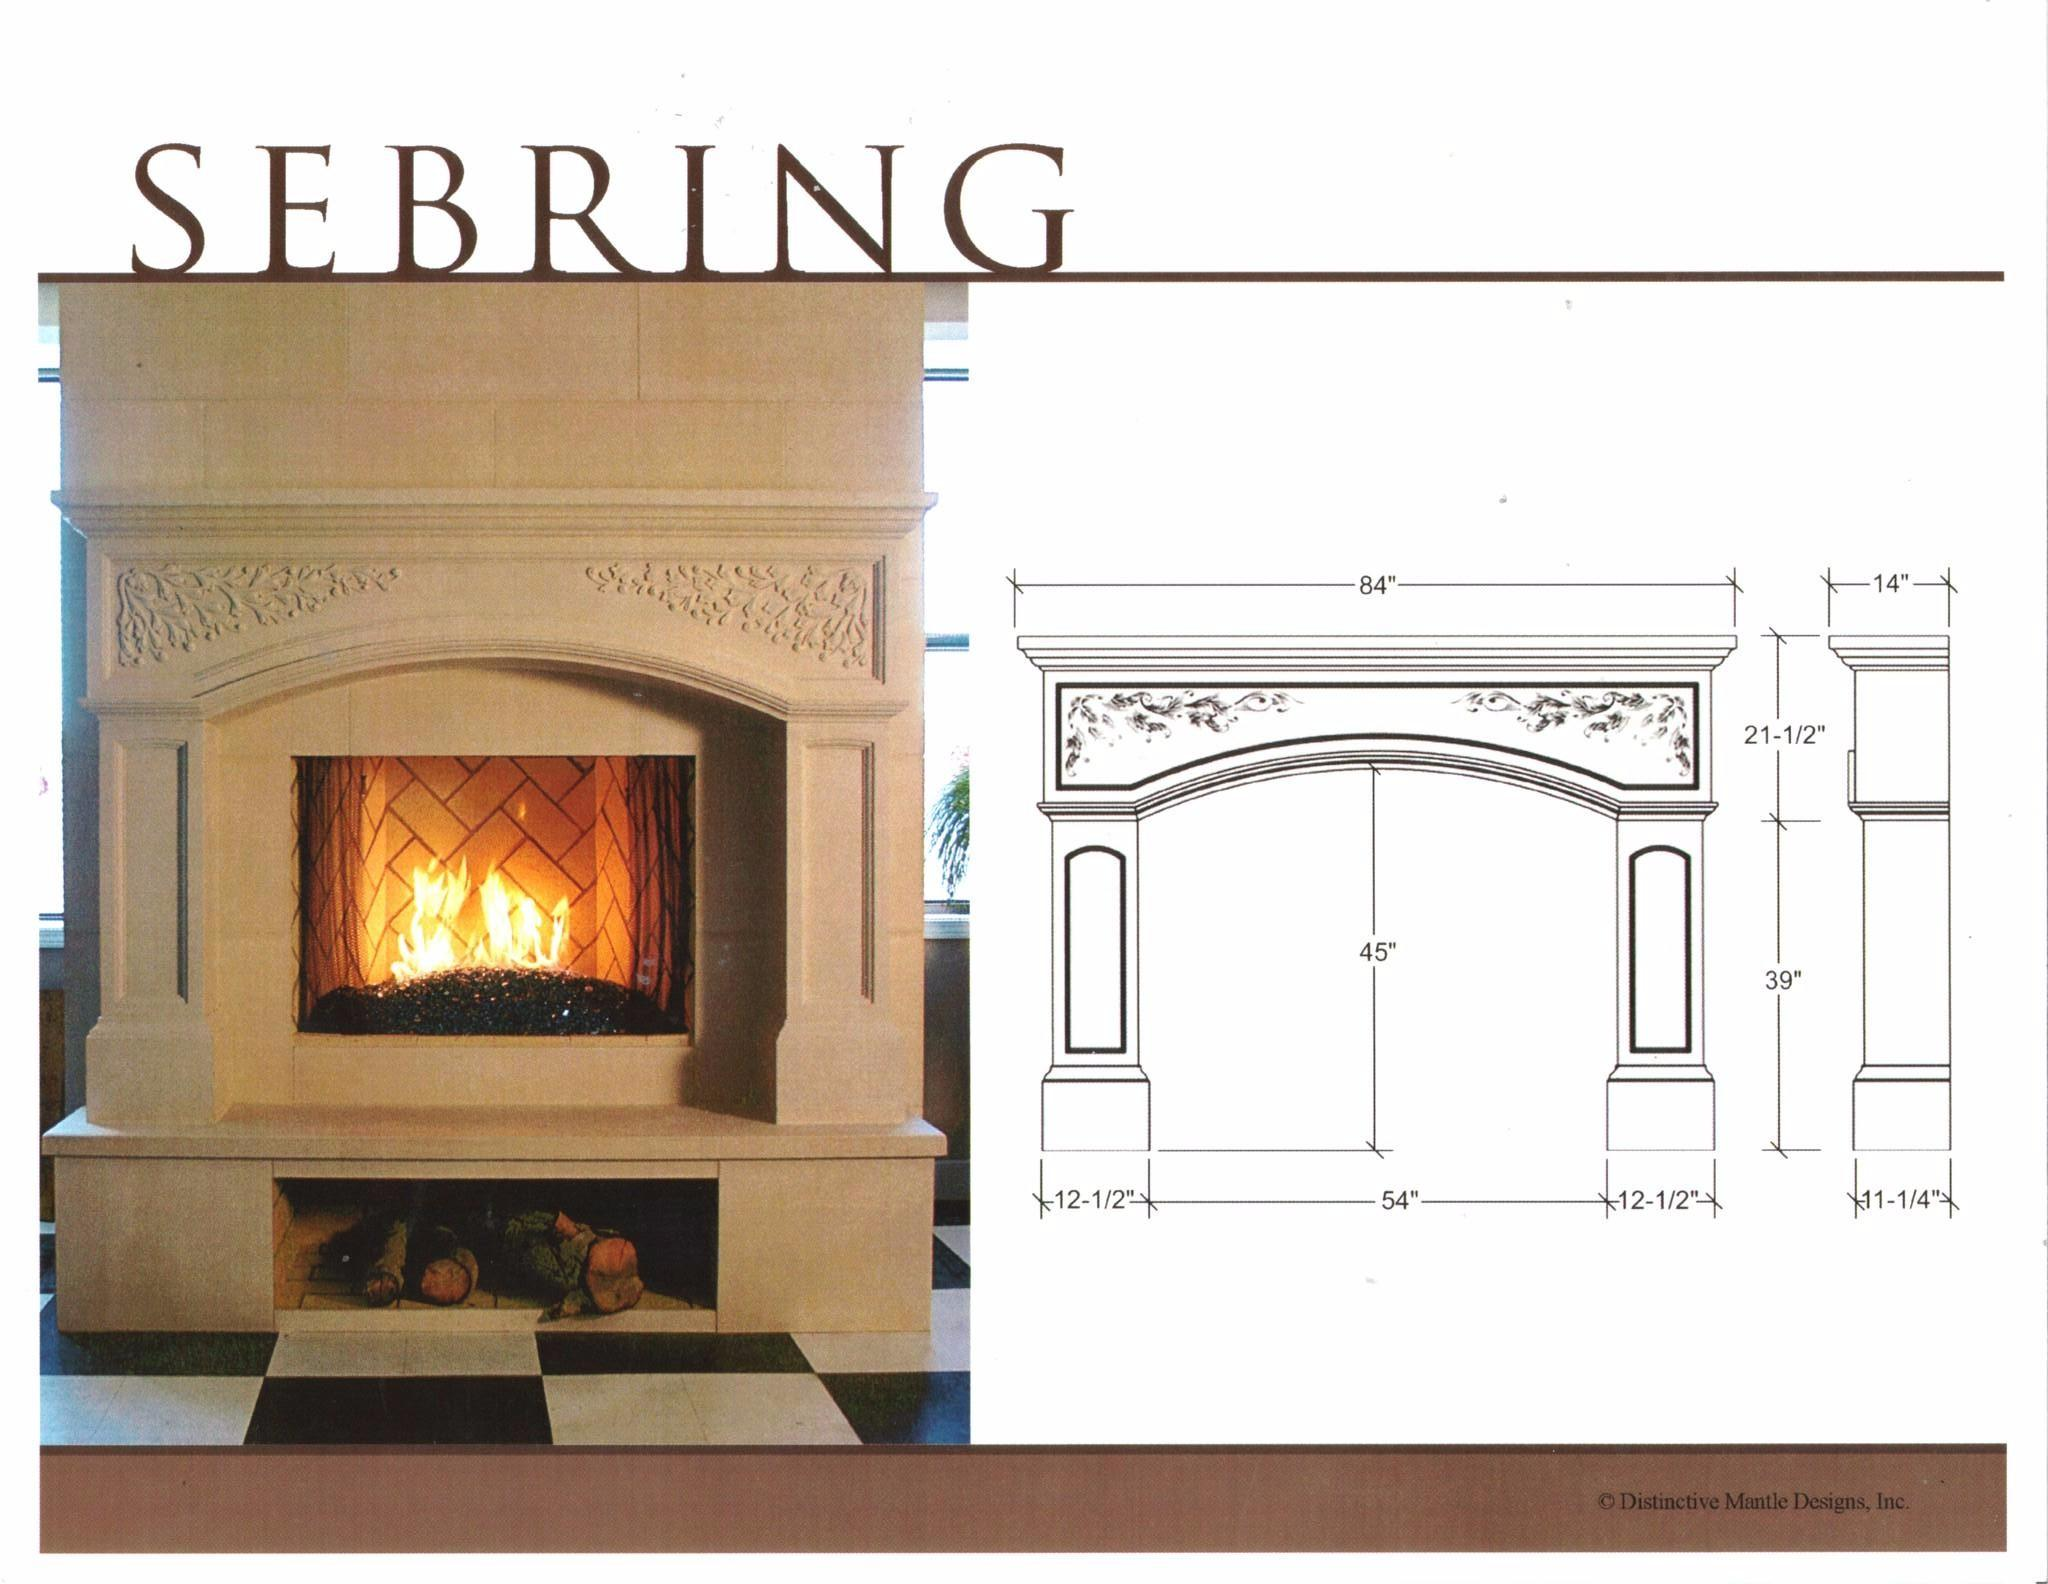 made pin old cast mantels stone fireplace fireplaces ebay mantle mantel usa garden hearth antiques architectural world surround in